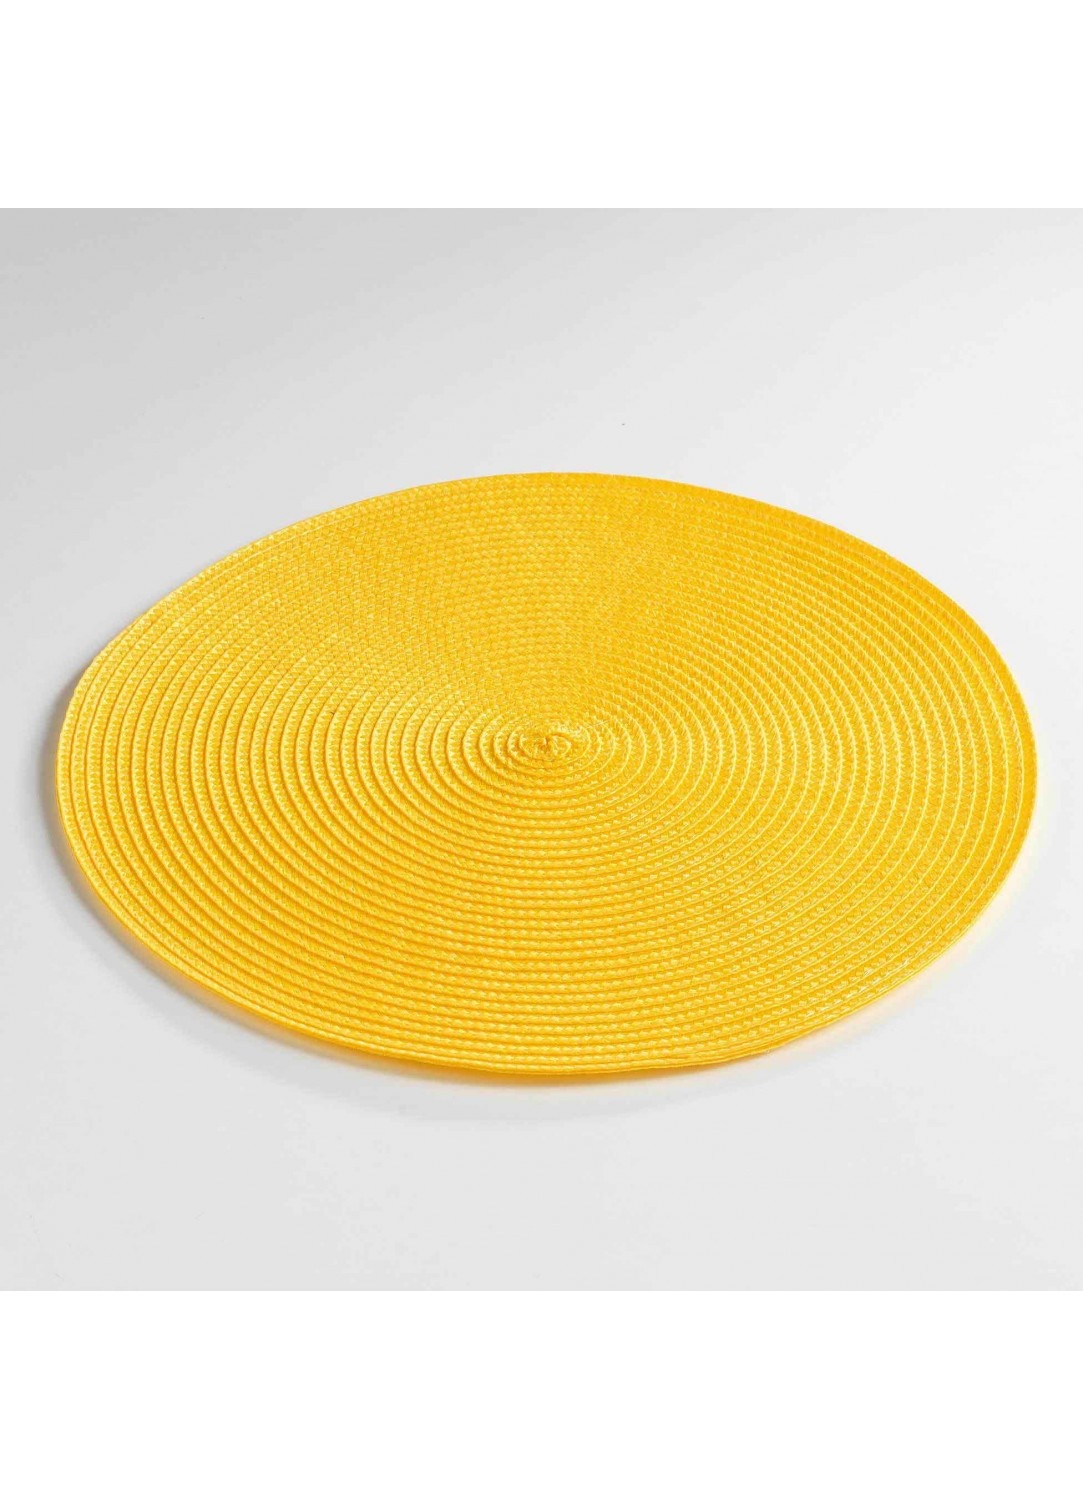 Set de Table Rond et Coloré  (Jaune)